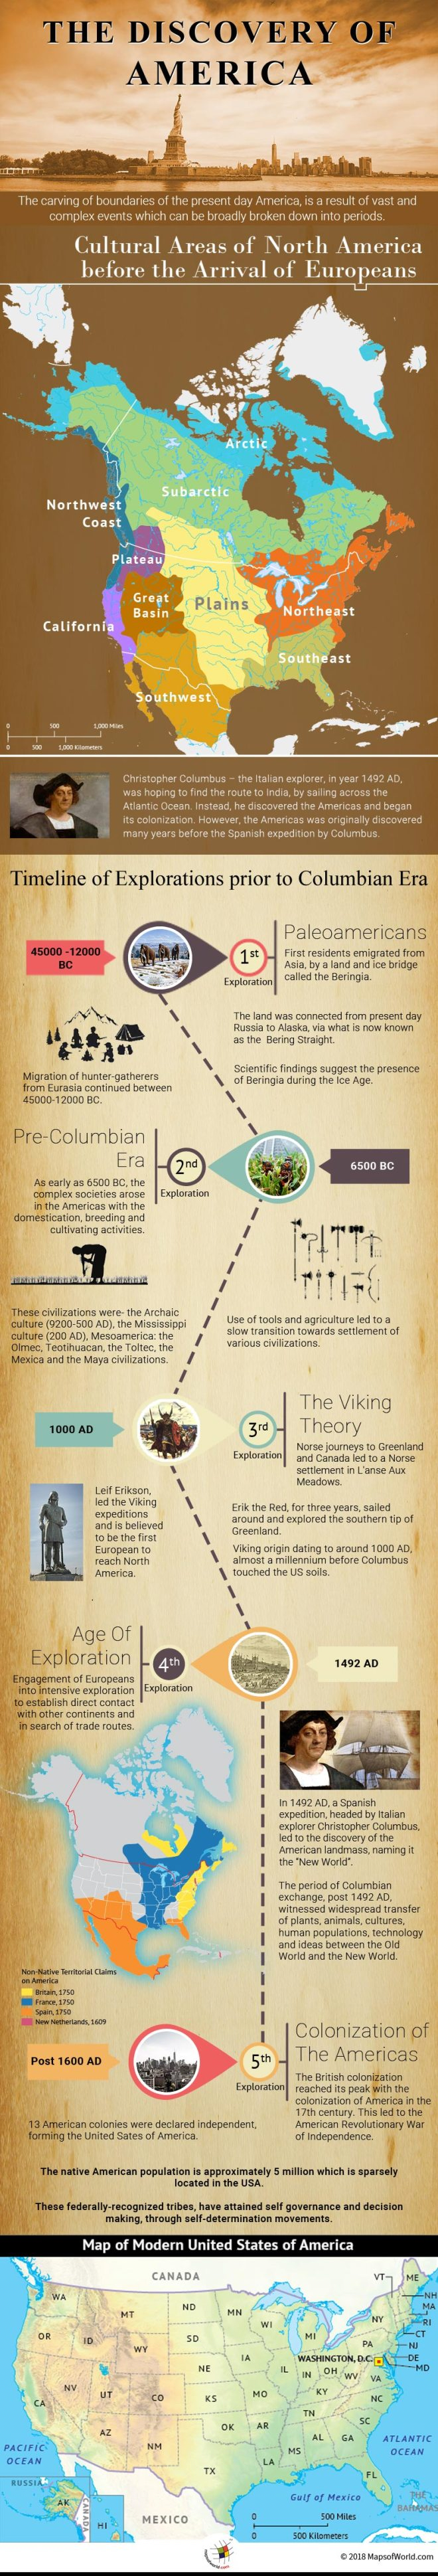 Infographic elaborating the discovery of Americas.